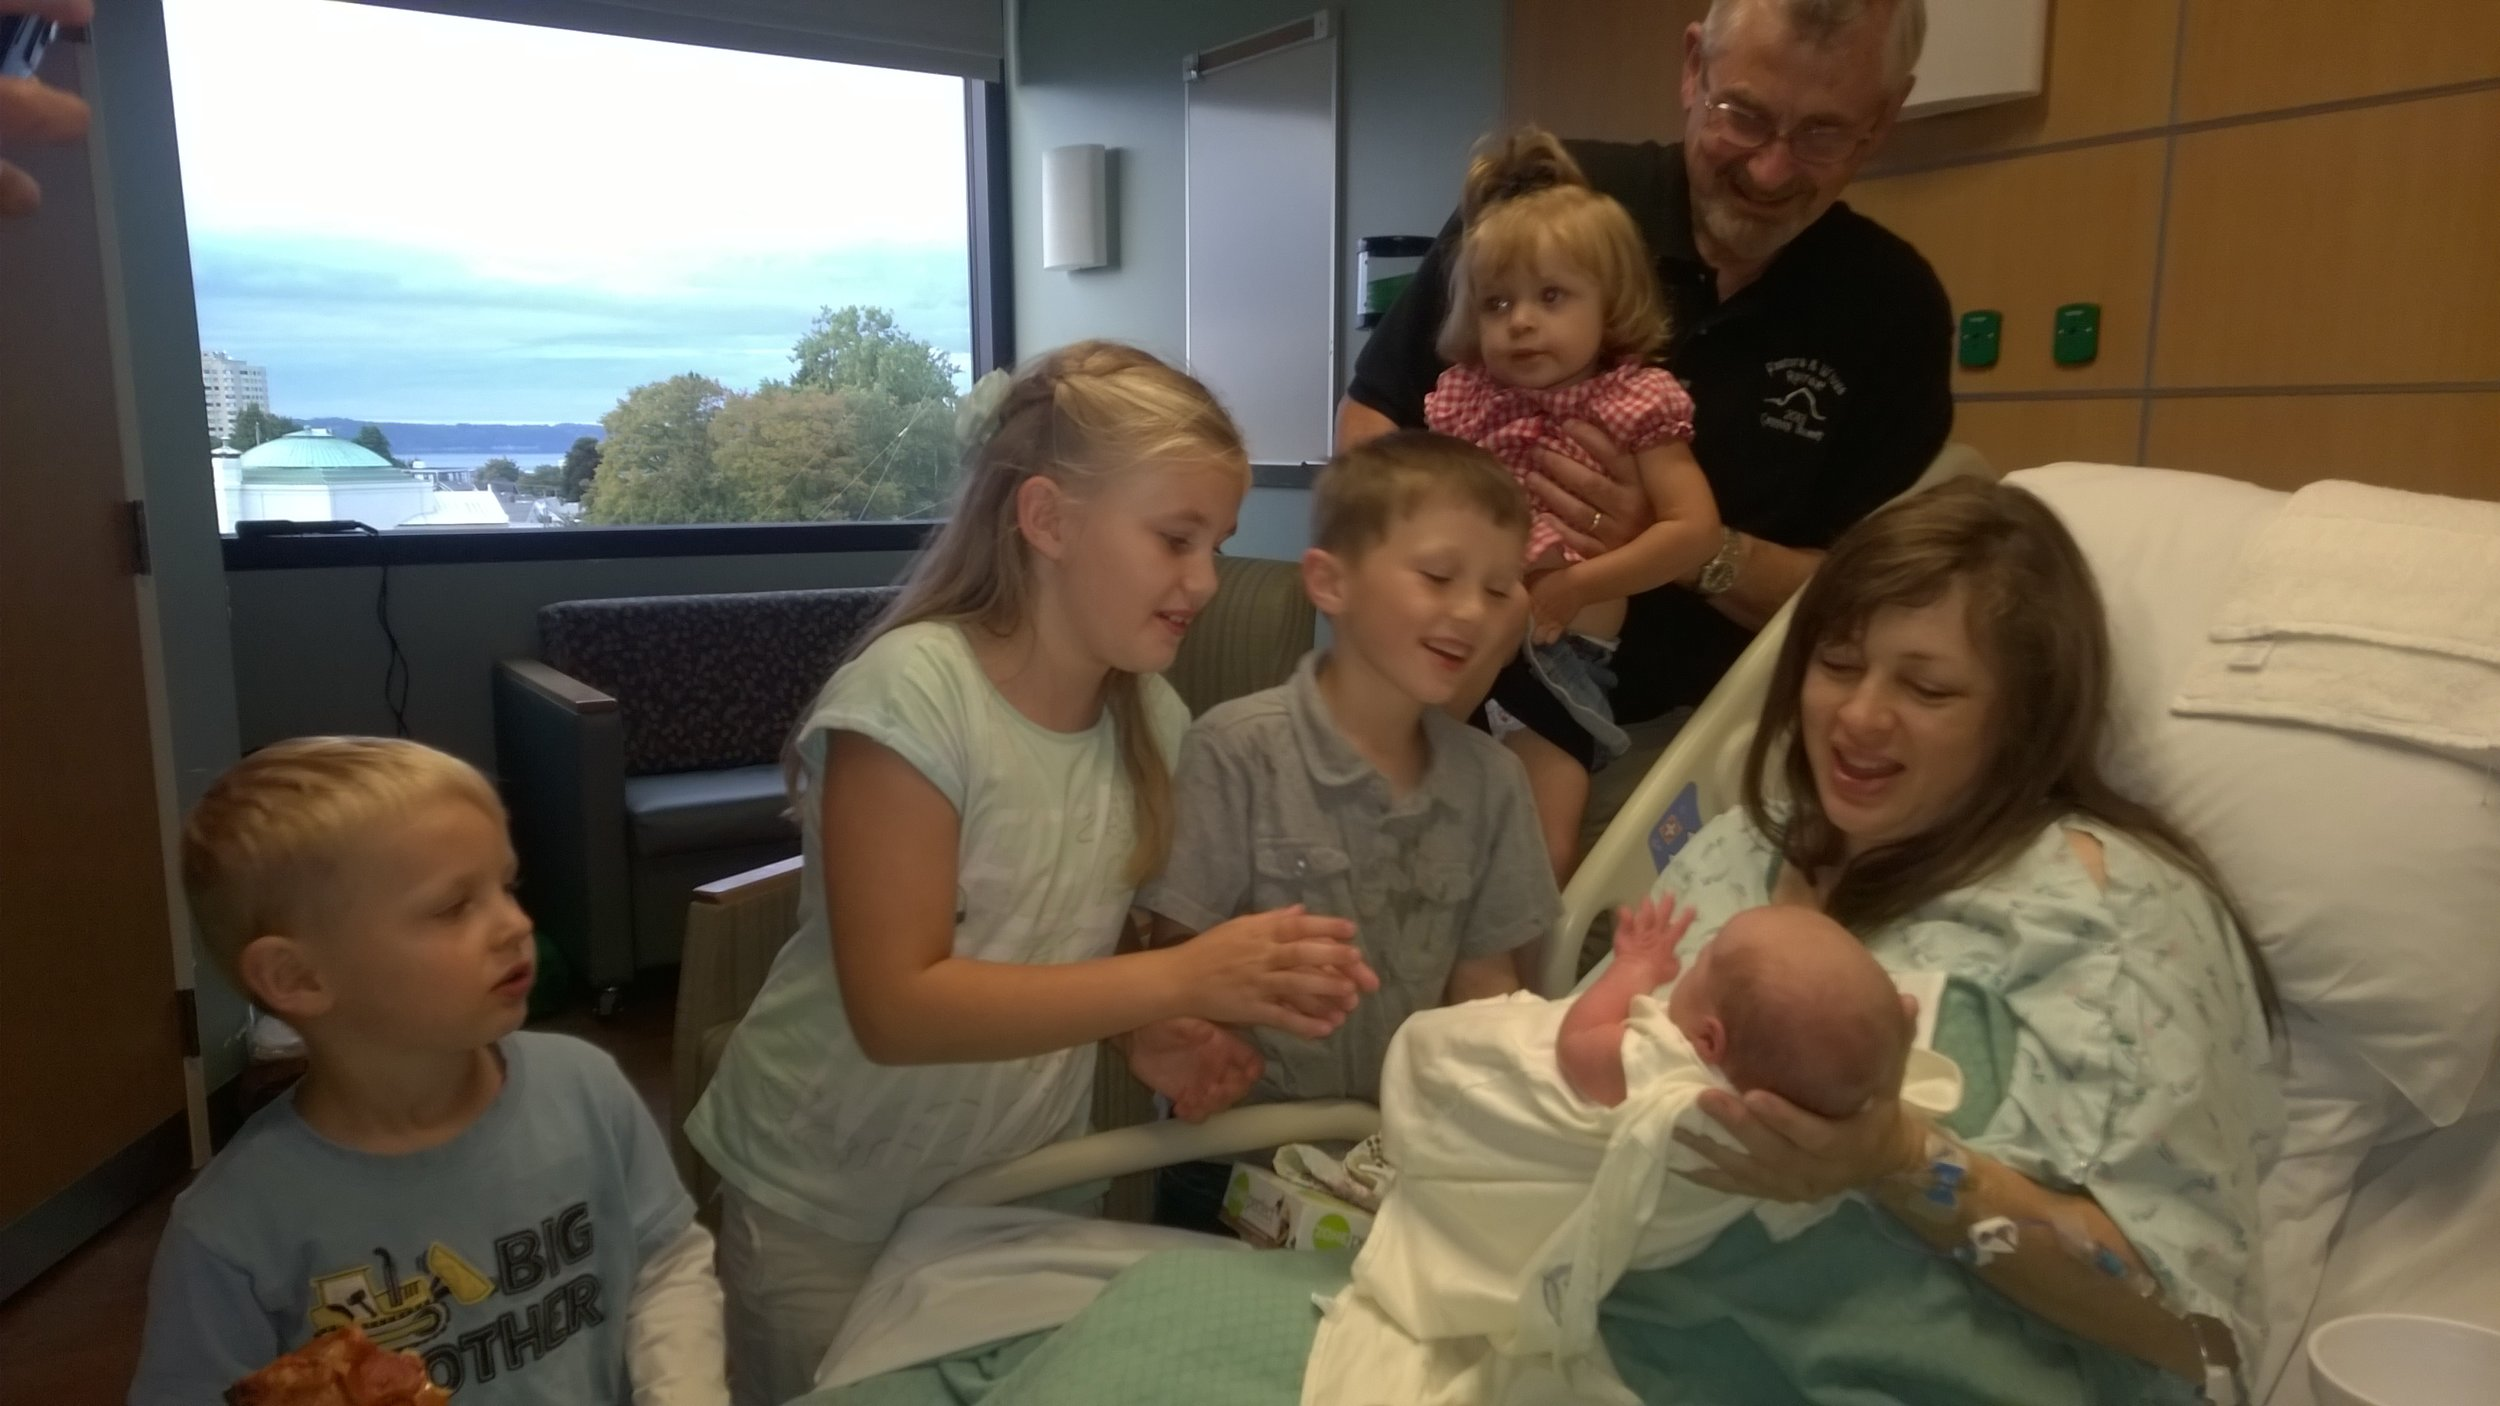 Little Titus James meets his brothers & sisters and grandpa for the first time.